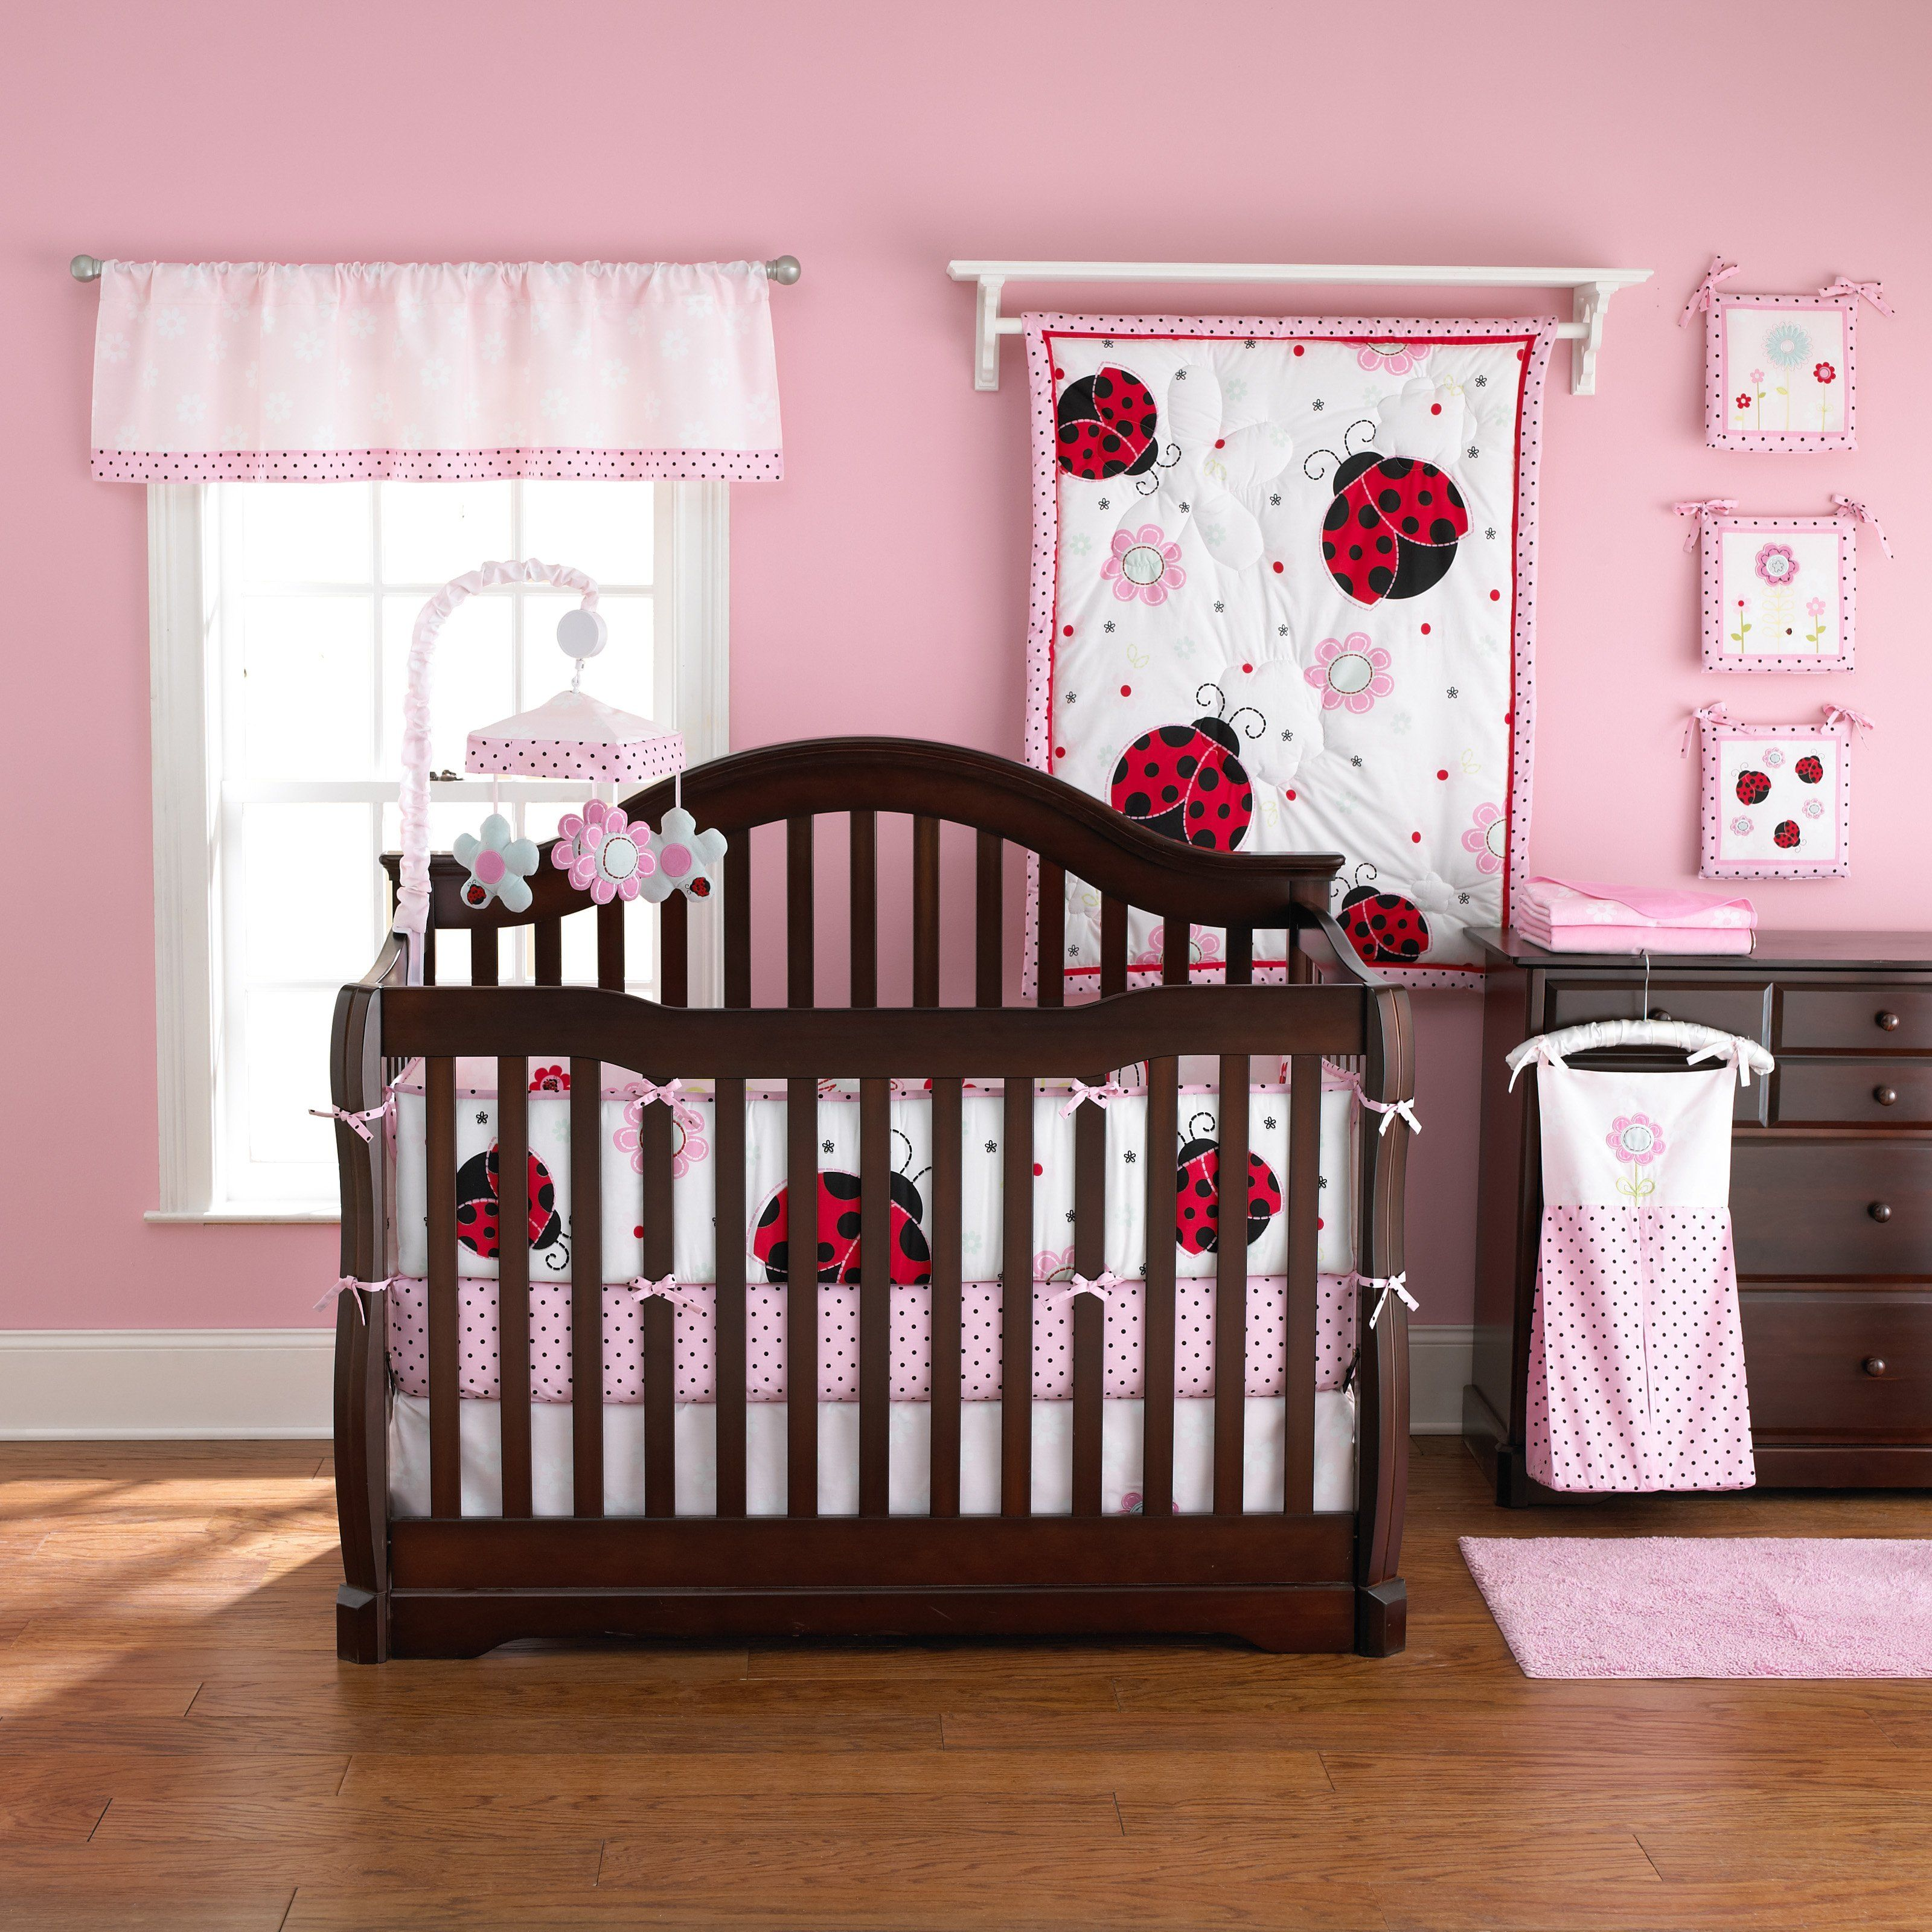 Have To It Too Good By Jenny Mccarthy Pretty In Pink 5 Pc Reversible Crib Set 99 98